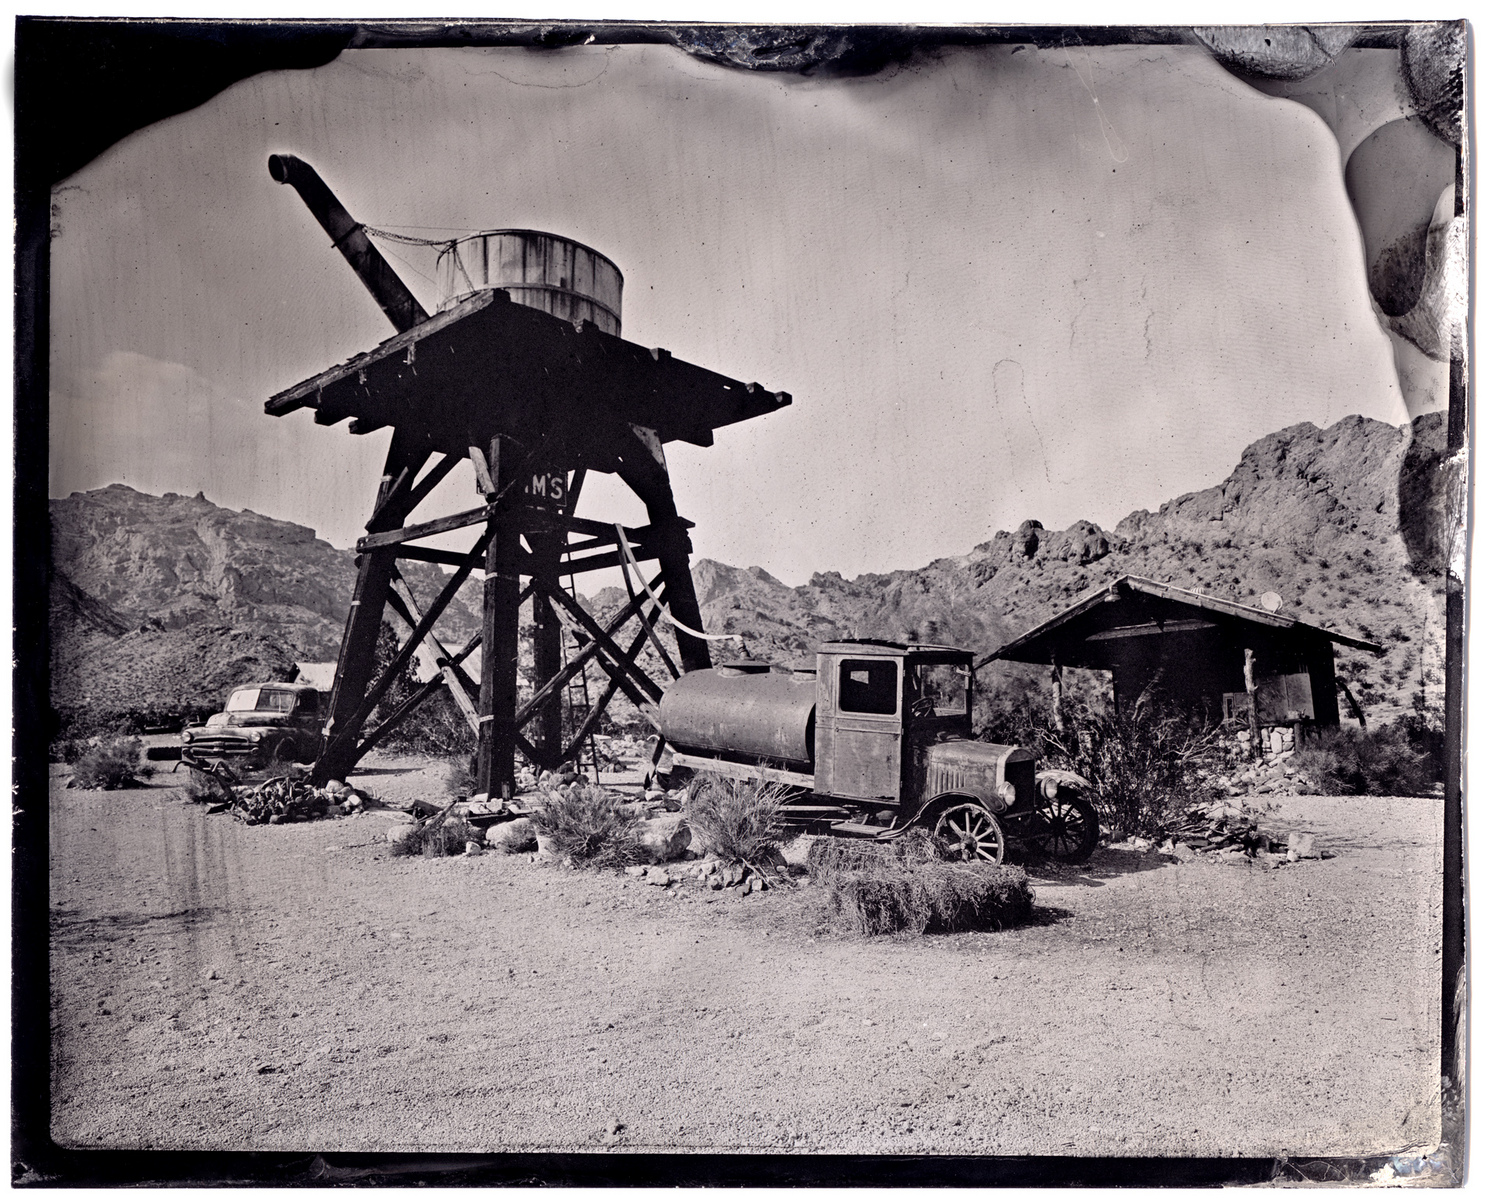 The American West -TINTYPE - James Weber